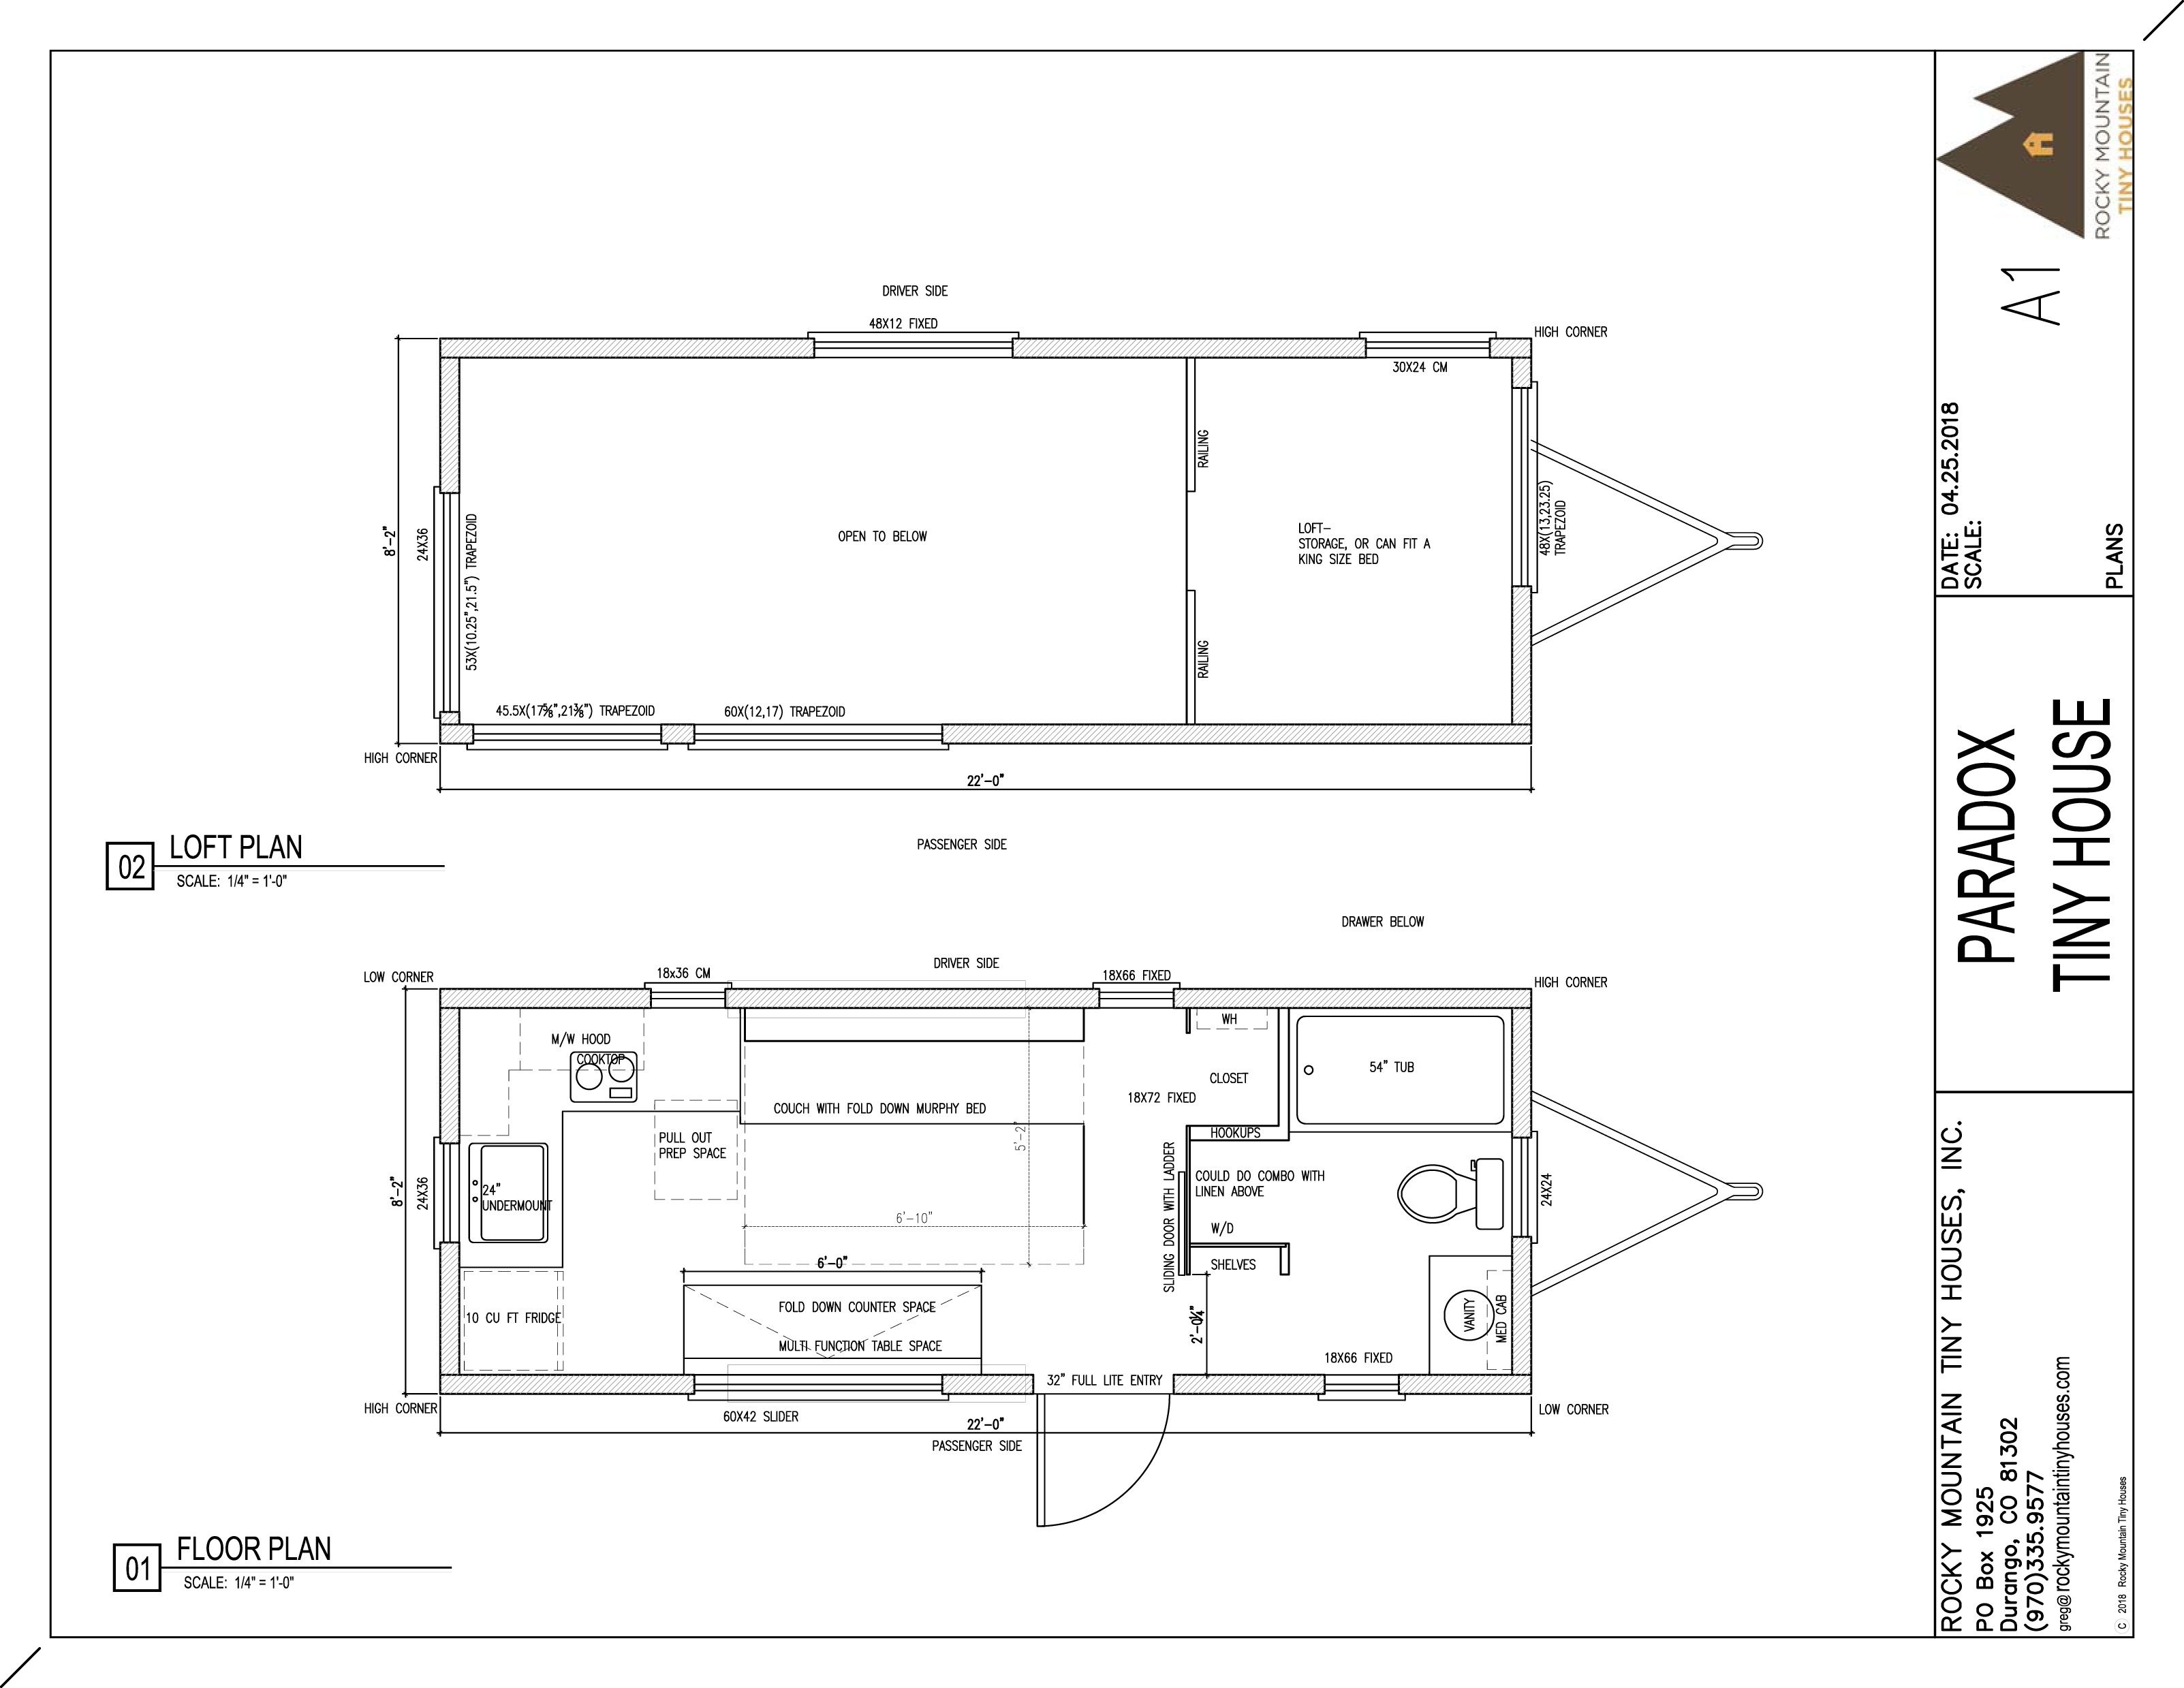 22' Paradox Tiny House - Rocky Mountain Tiny Houses on cottage floor plans, studio floor plans, home floor plans, small house plans, tiny houses on wheels, great tiny house plans, travel trailer floor plans, shed house plans, shipping container floor plans, tiny houses one story, architecture floor plans, tiny house plans 20x20, cabin house plans,